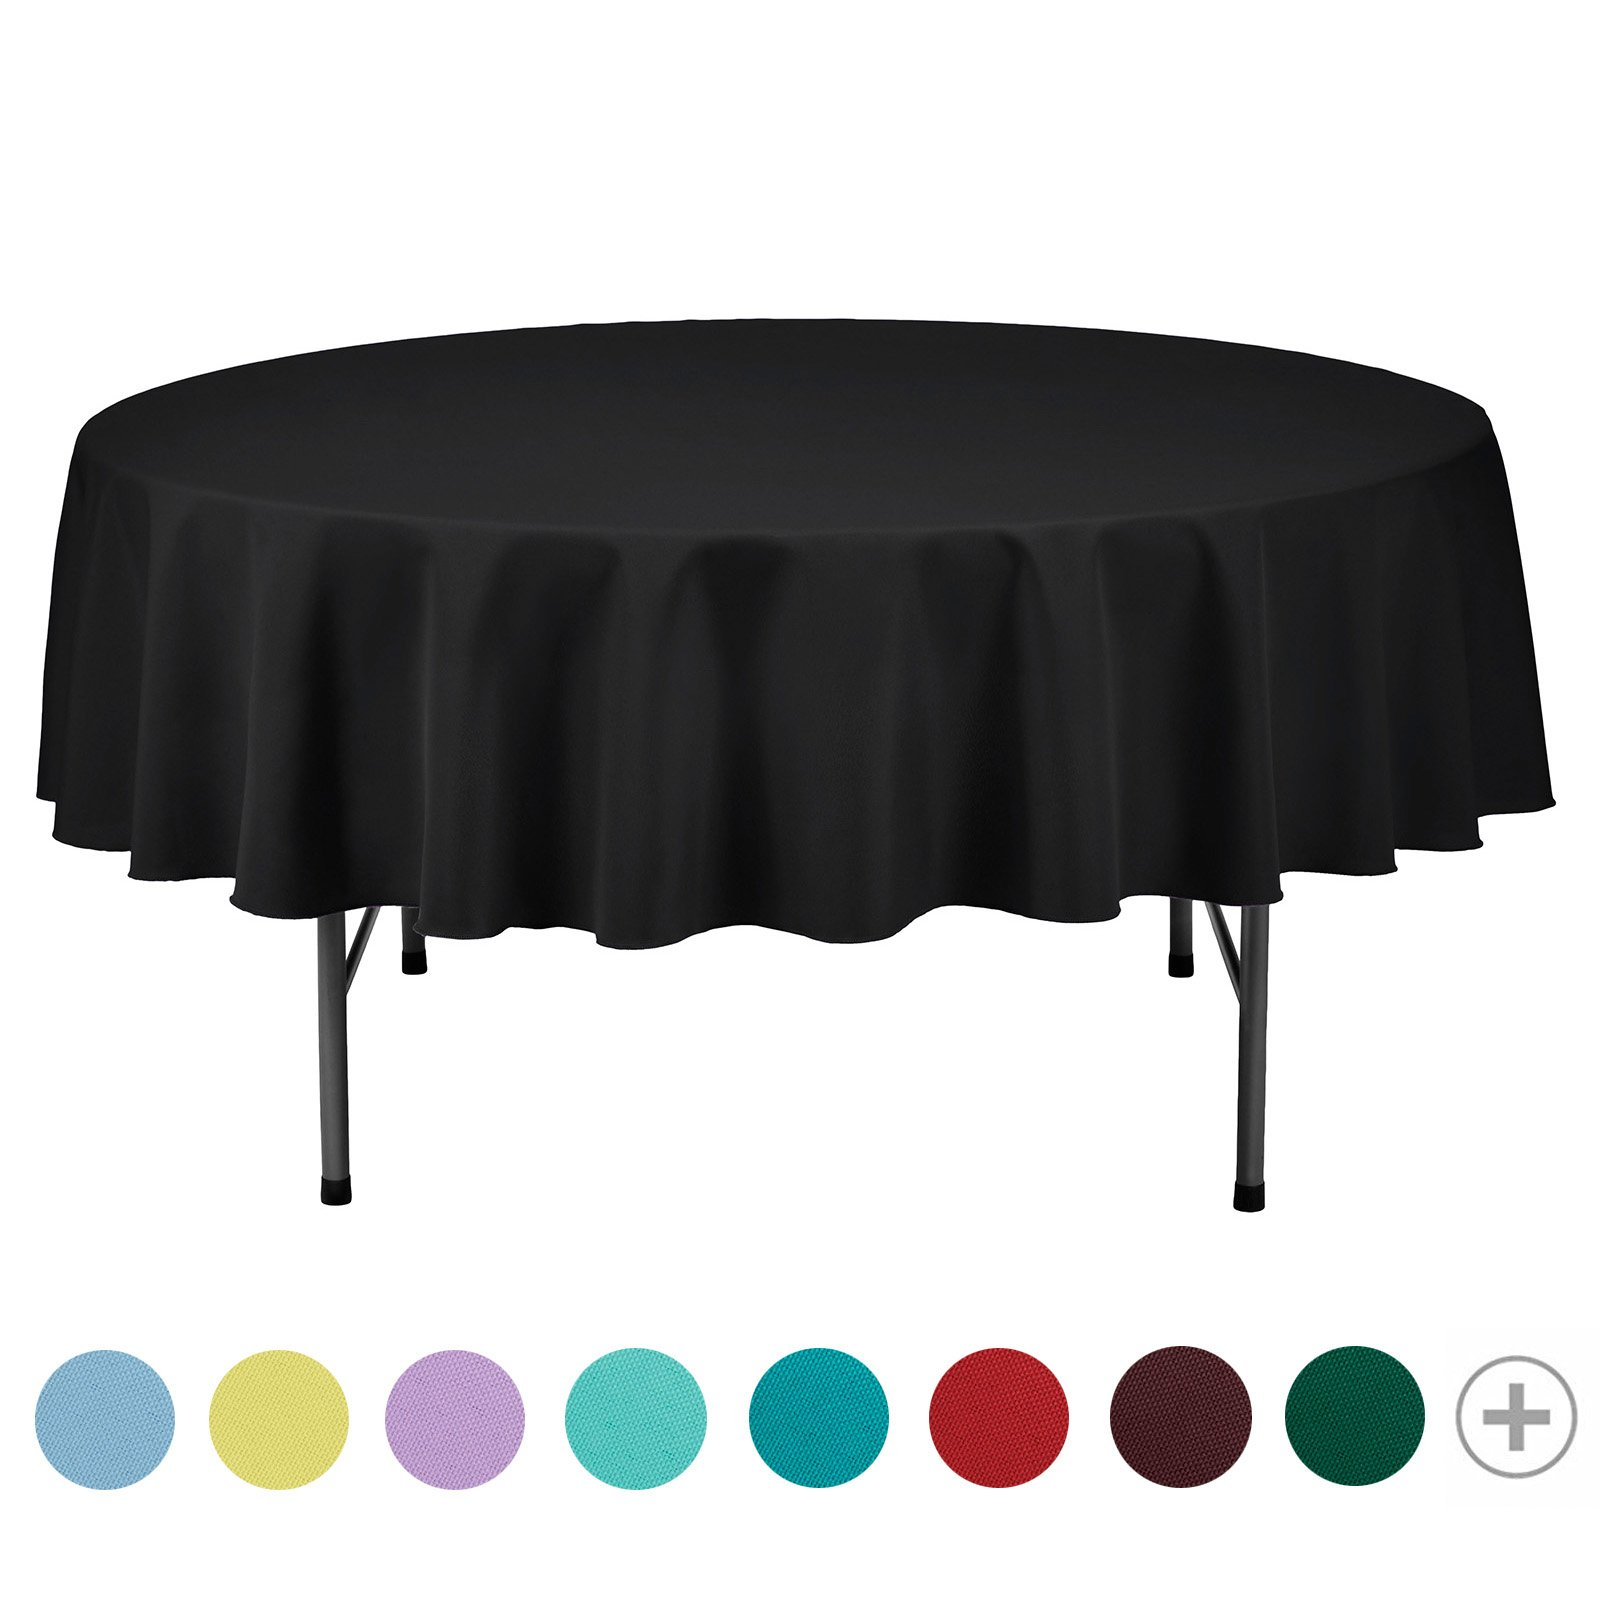 VEEYOO Tablecloth 70 inch Round Solid Polyester Table Cover for Wedding Restaurant Party Picnic Indoor Outdoor Use, Black